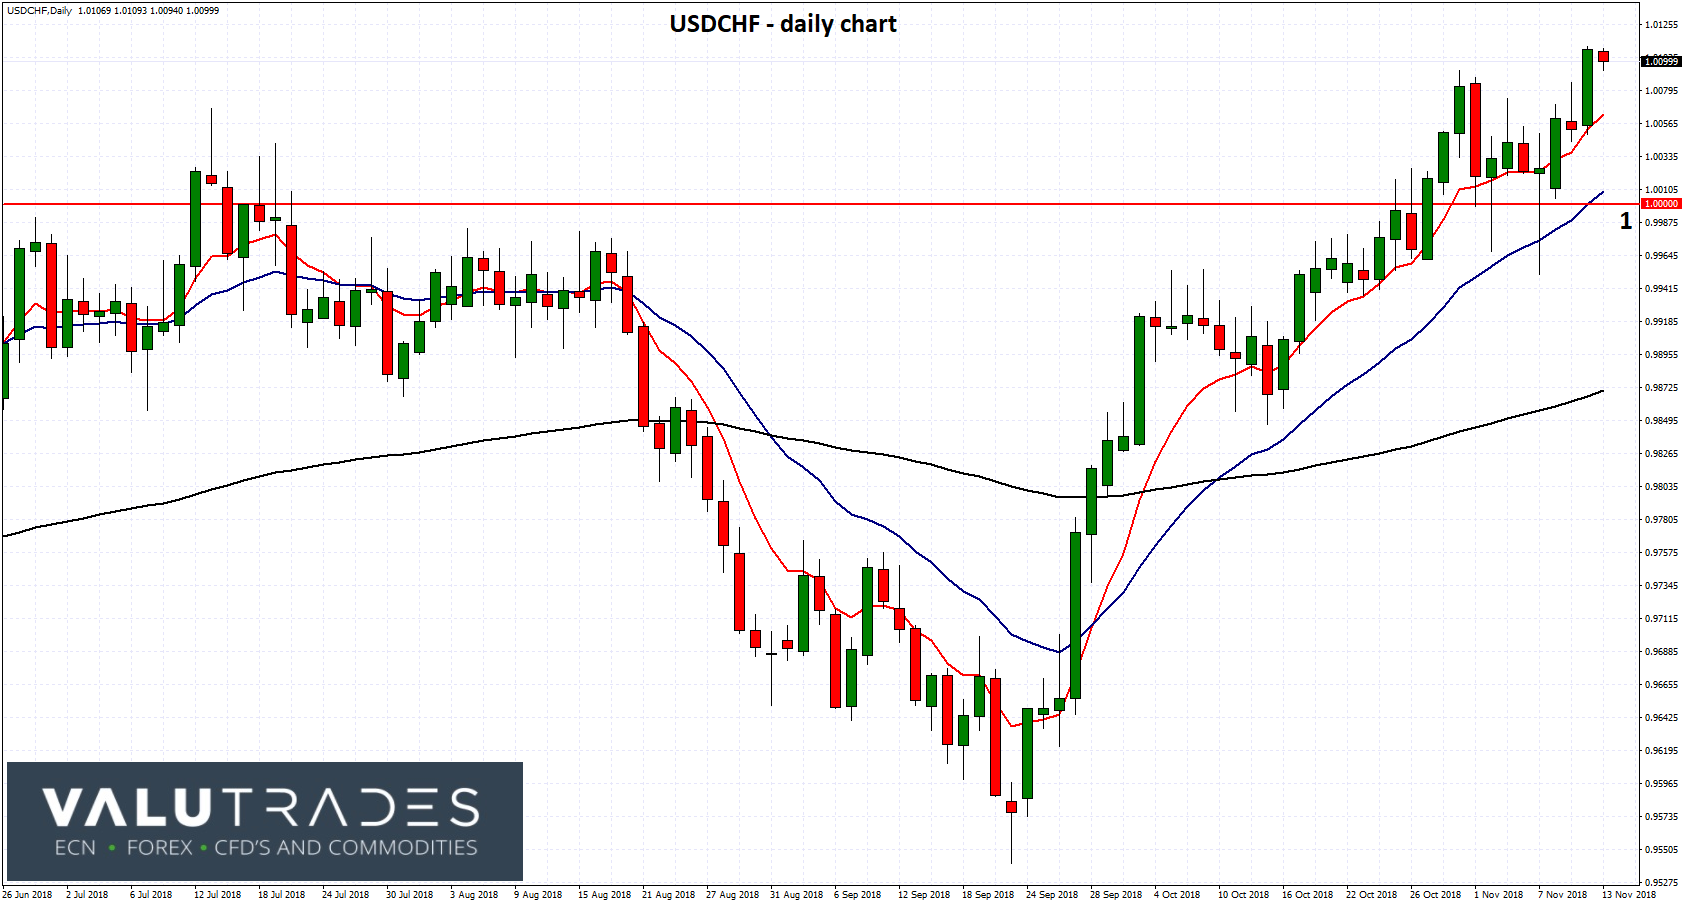 USDCHF - Settles Above 1 as SNB Urges Patience